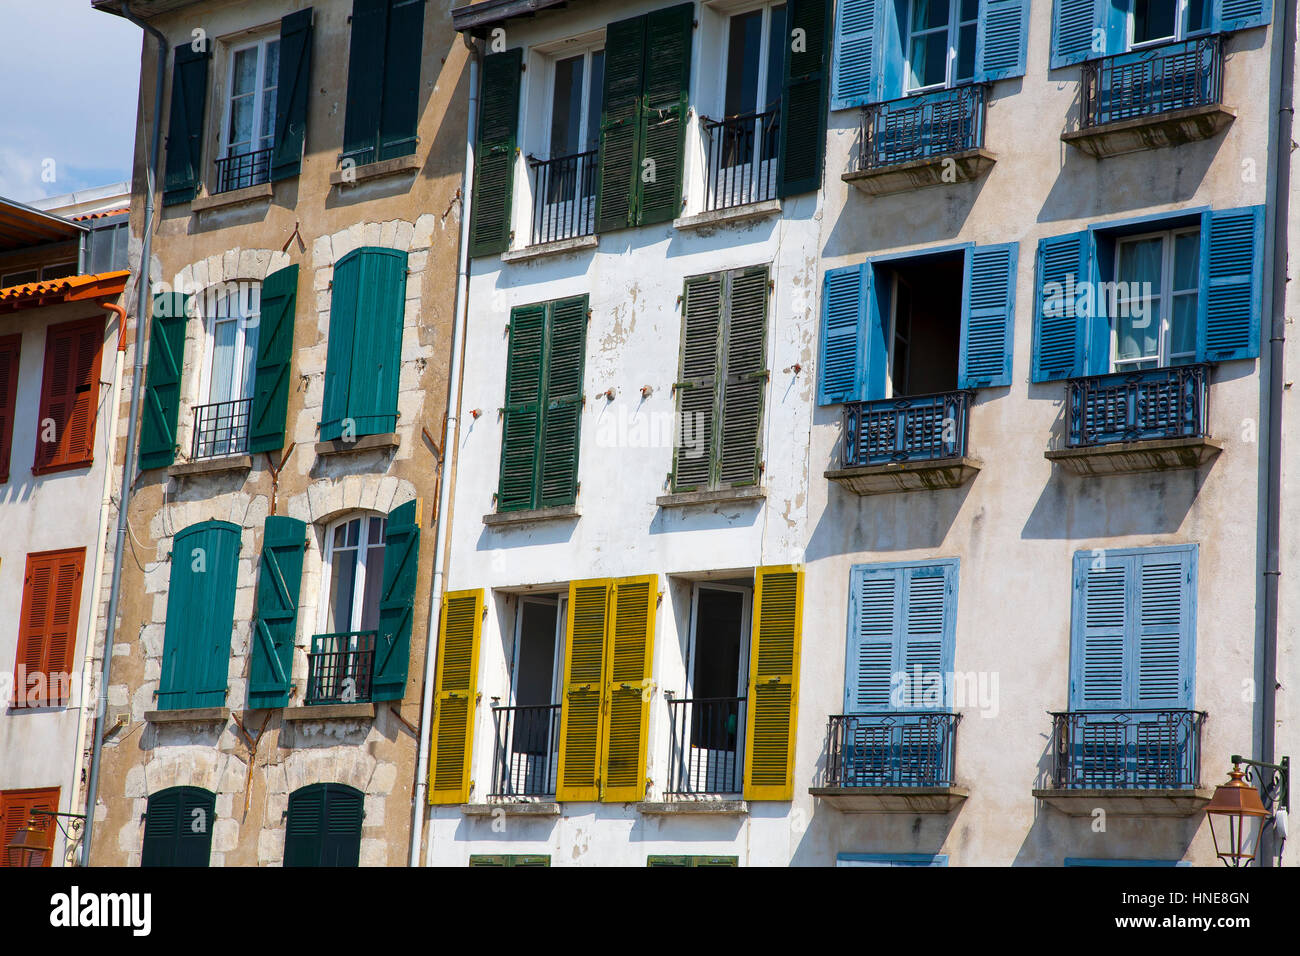 Facades in Petit Bayonne. - Stock Image